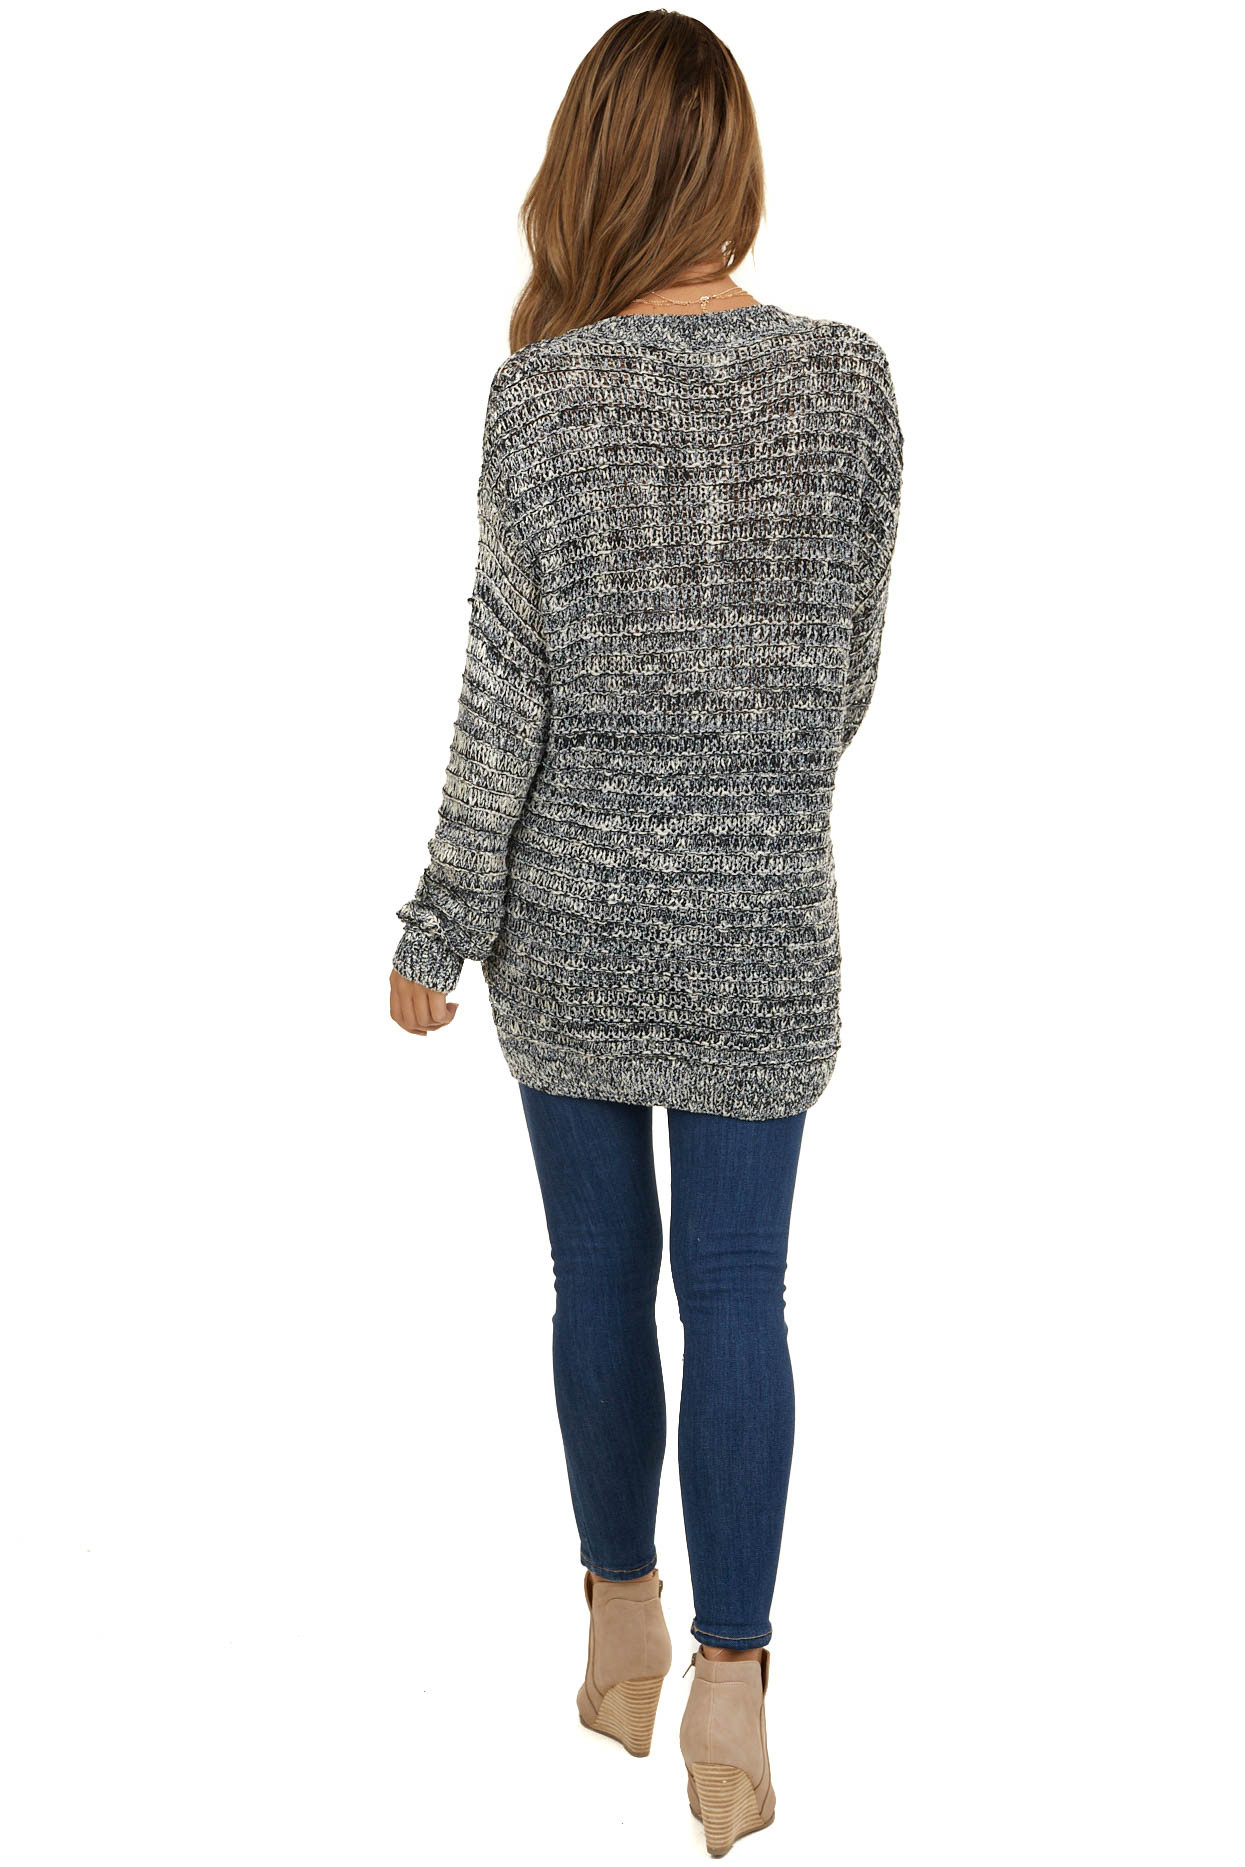 Black and Ivory Loose Knit Sweater with Ribbed Trim